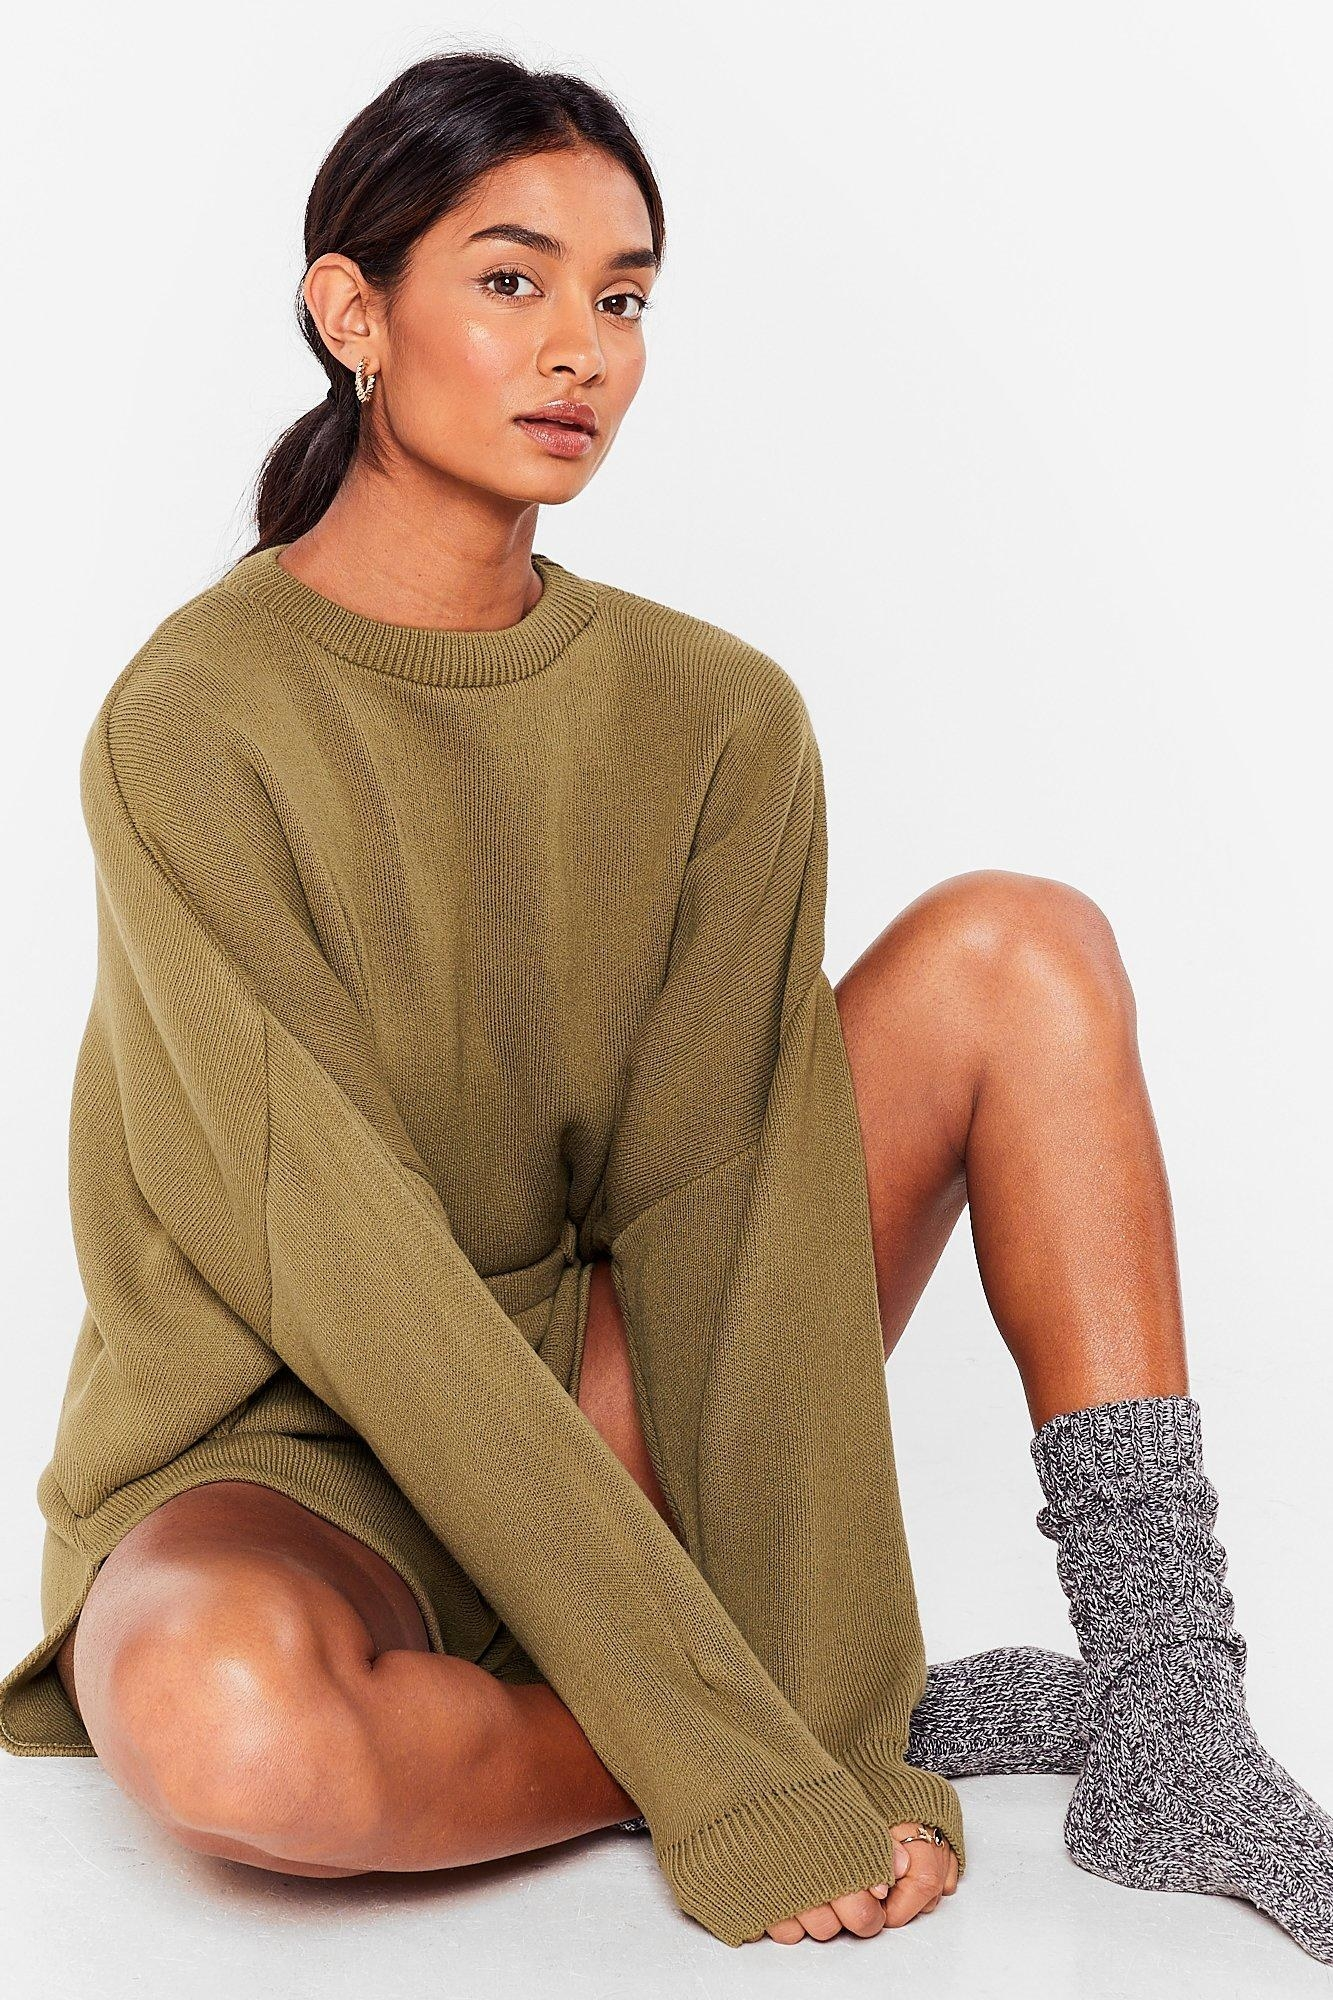 Model wears olive green sweater and shorts lounge set